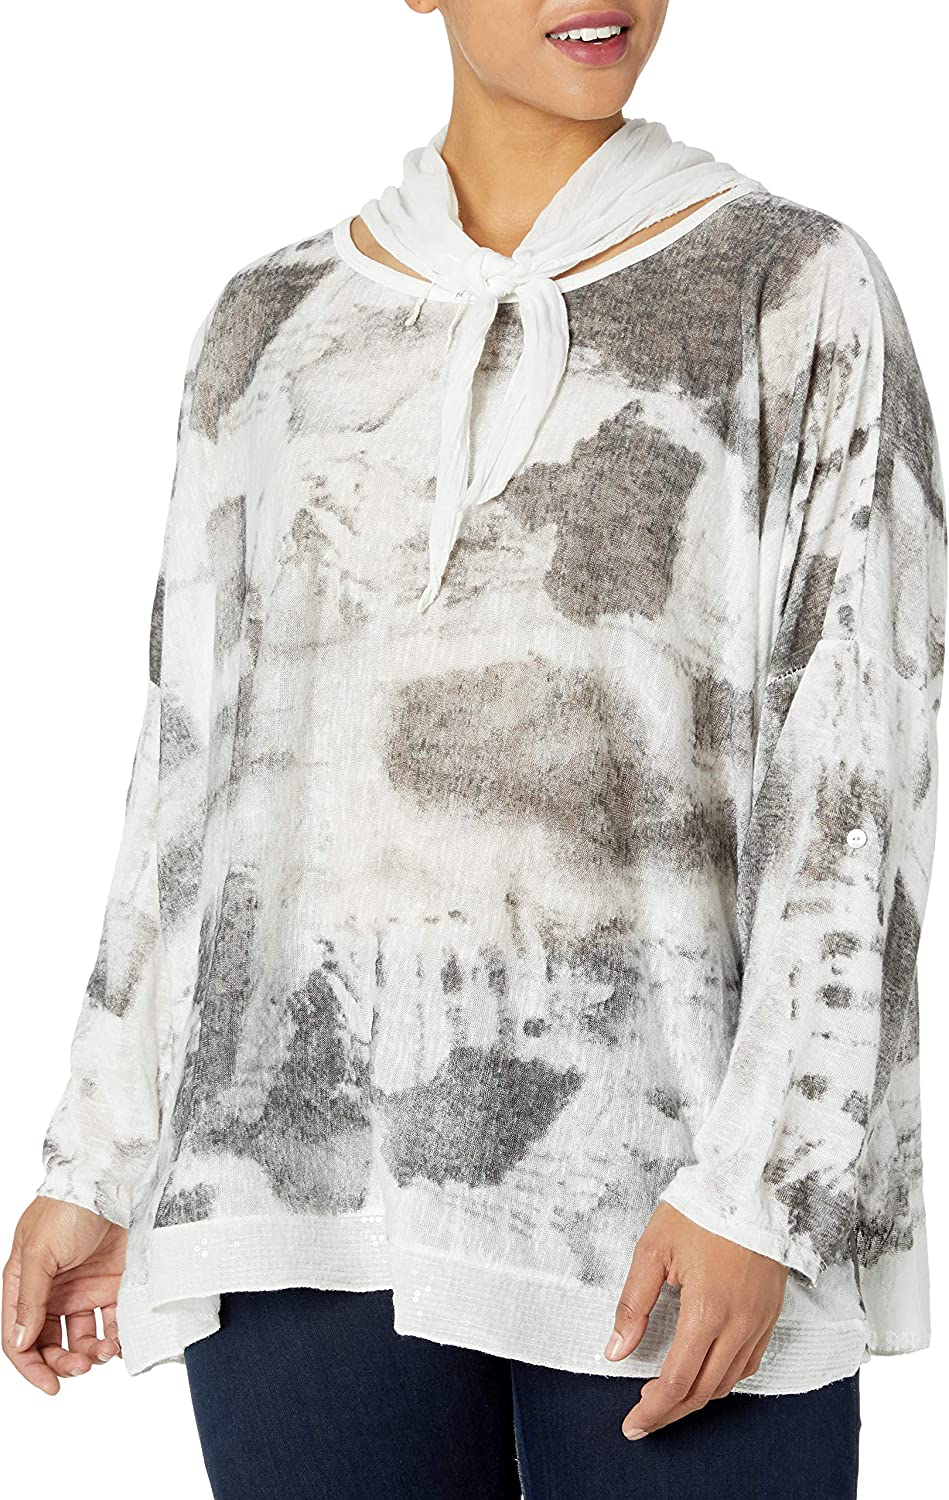 M Made in Italy Women's Plus Size Abstract Printed Scarfed Neck Tunic